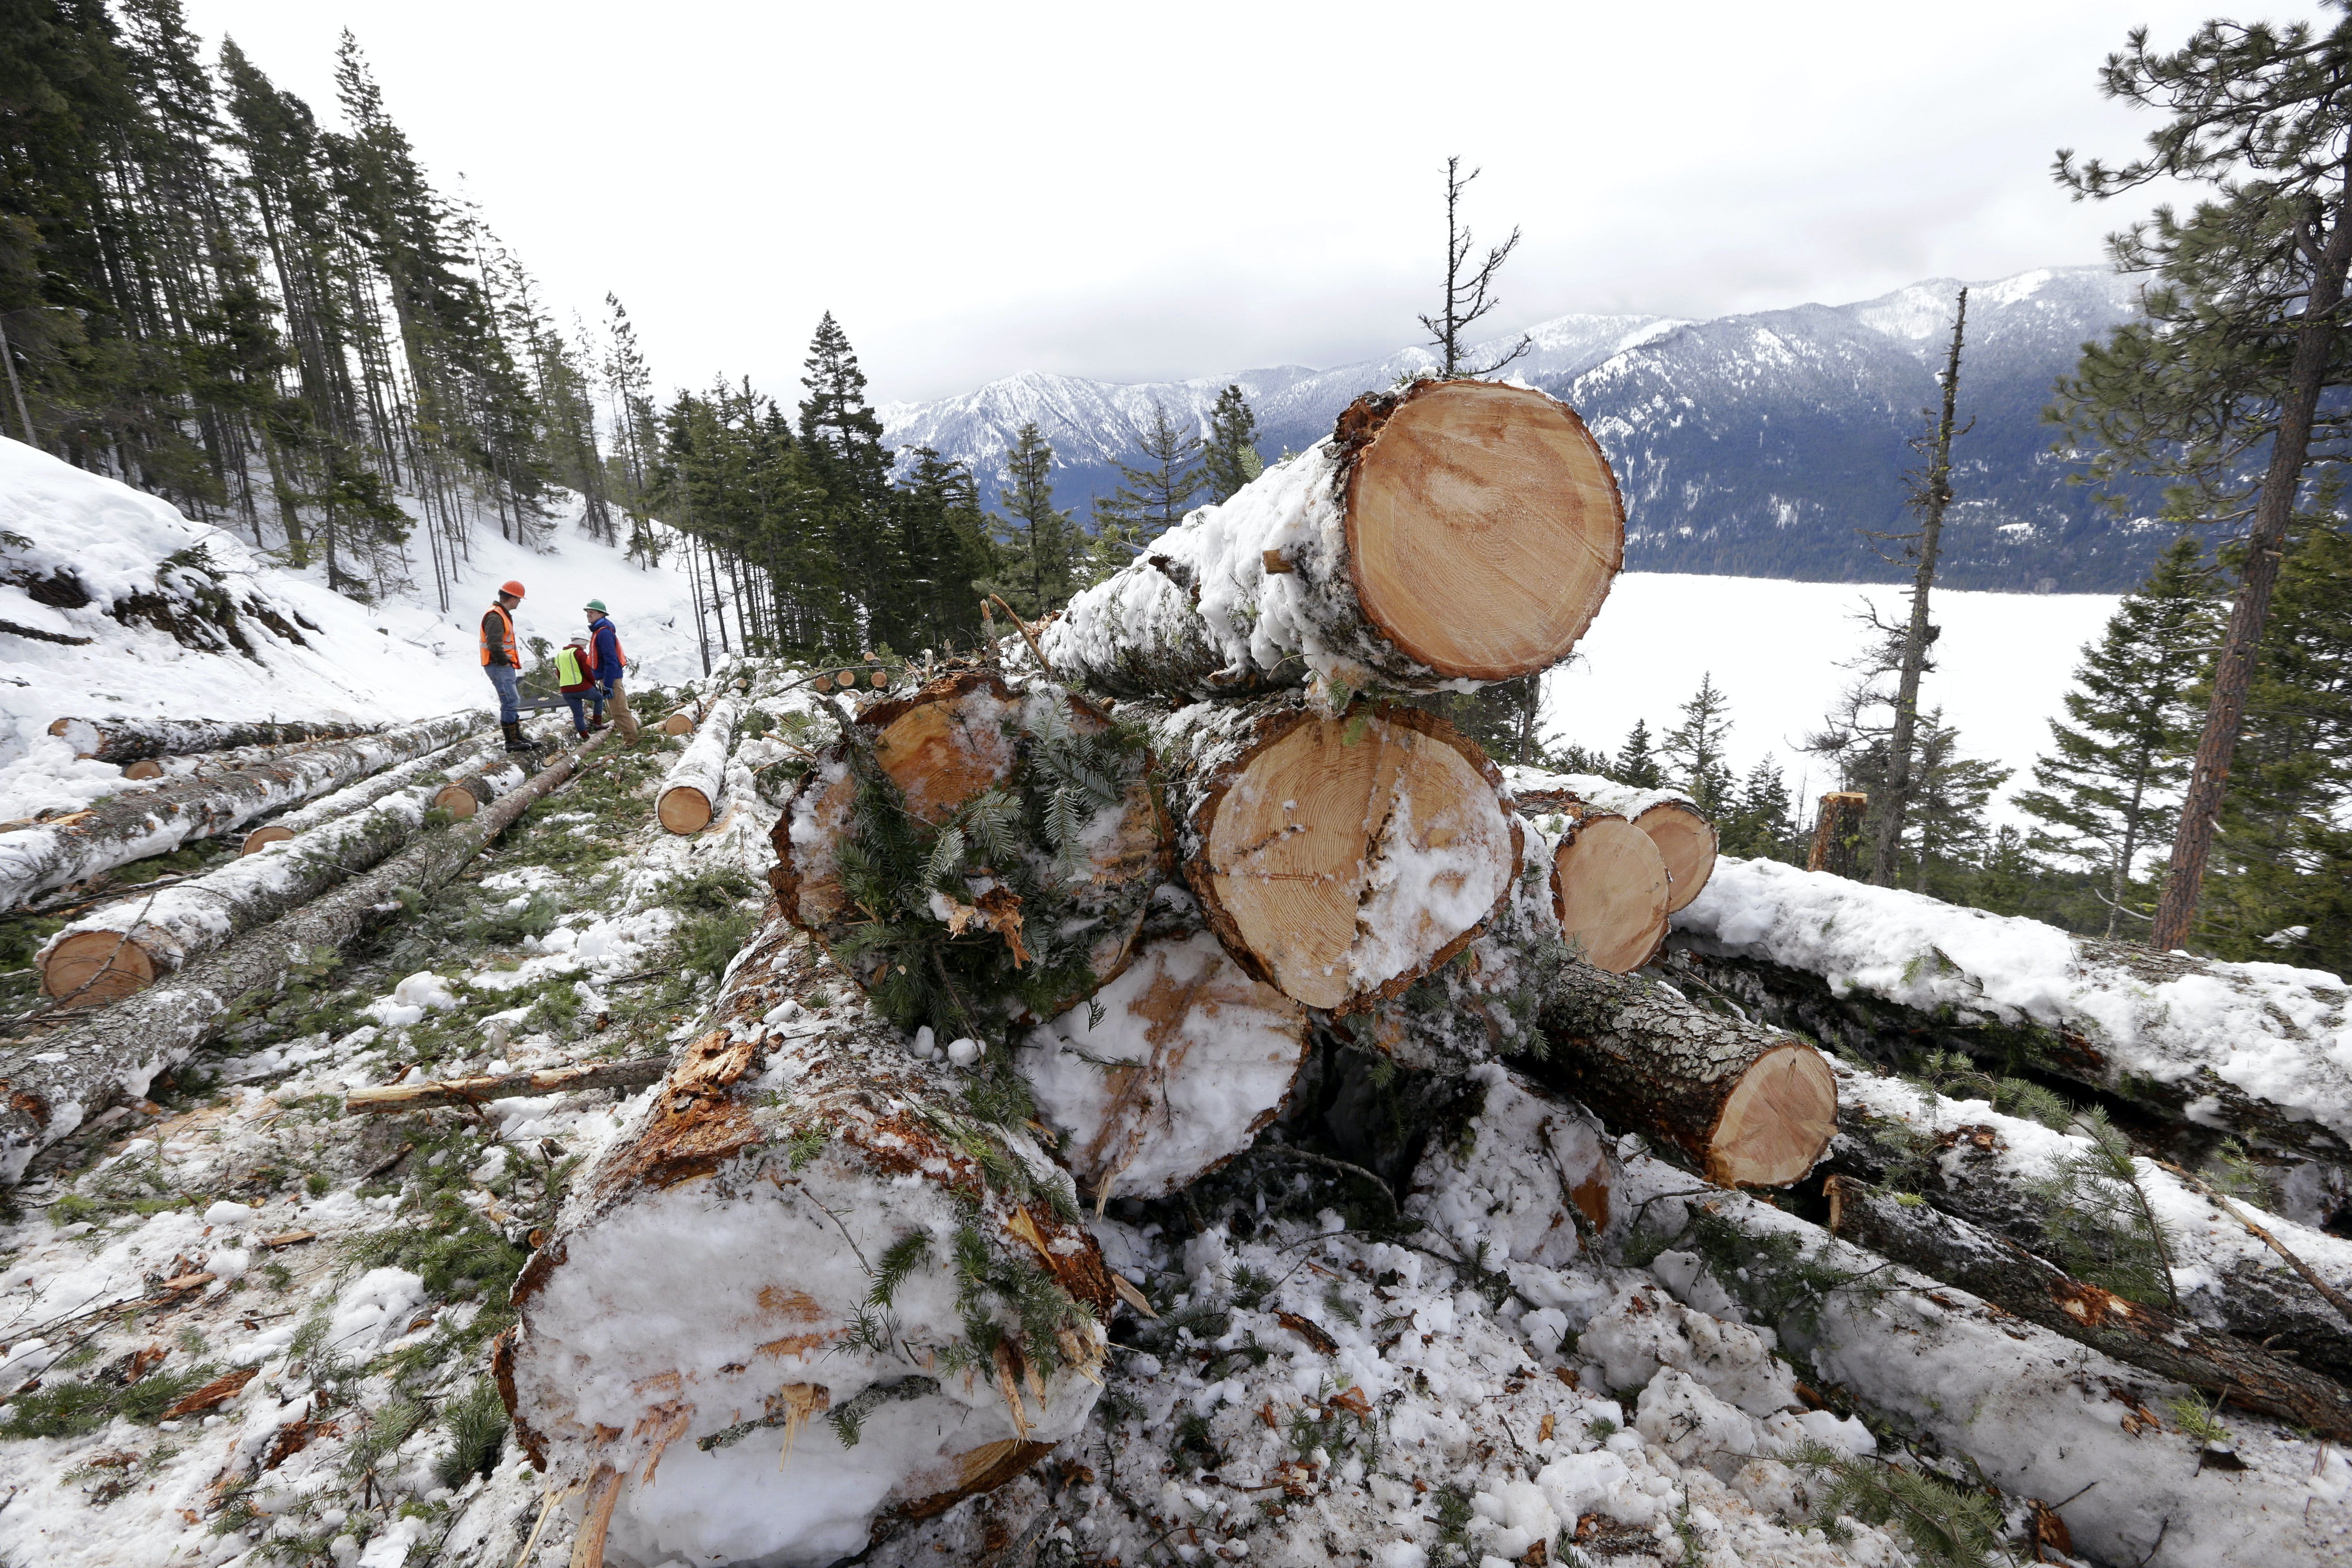 In this Feb. 22, 2017, photo, logs are stacked above Cle Elum Lake, where a crew is thinning a 100-acre patch on private land owned by the Nature Conservancy overlooking the lake, in Cle Elum, Wash. As part of a broader plan by the nonprofit environmental group to restore the pine forests of the Central Cascades so they are more resilient to wildfires and climate change, they're cutting down trees to save the forest. (AP Photo/Elaine Thompson)